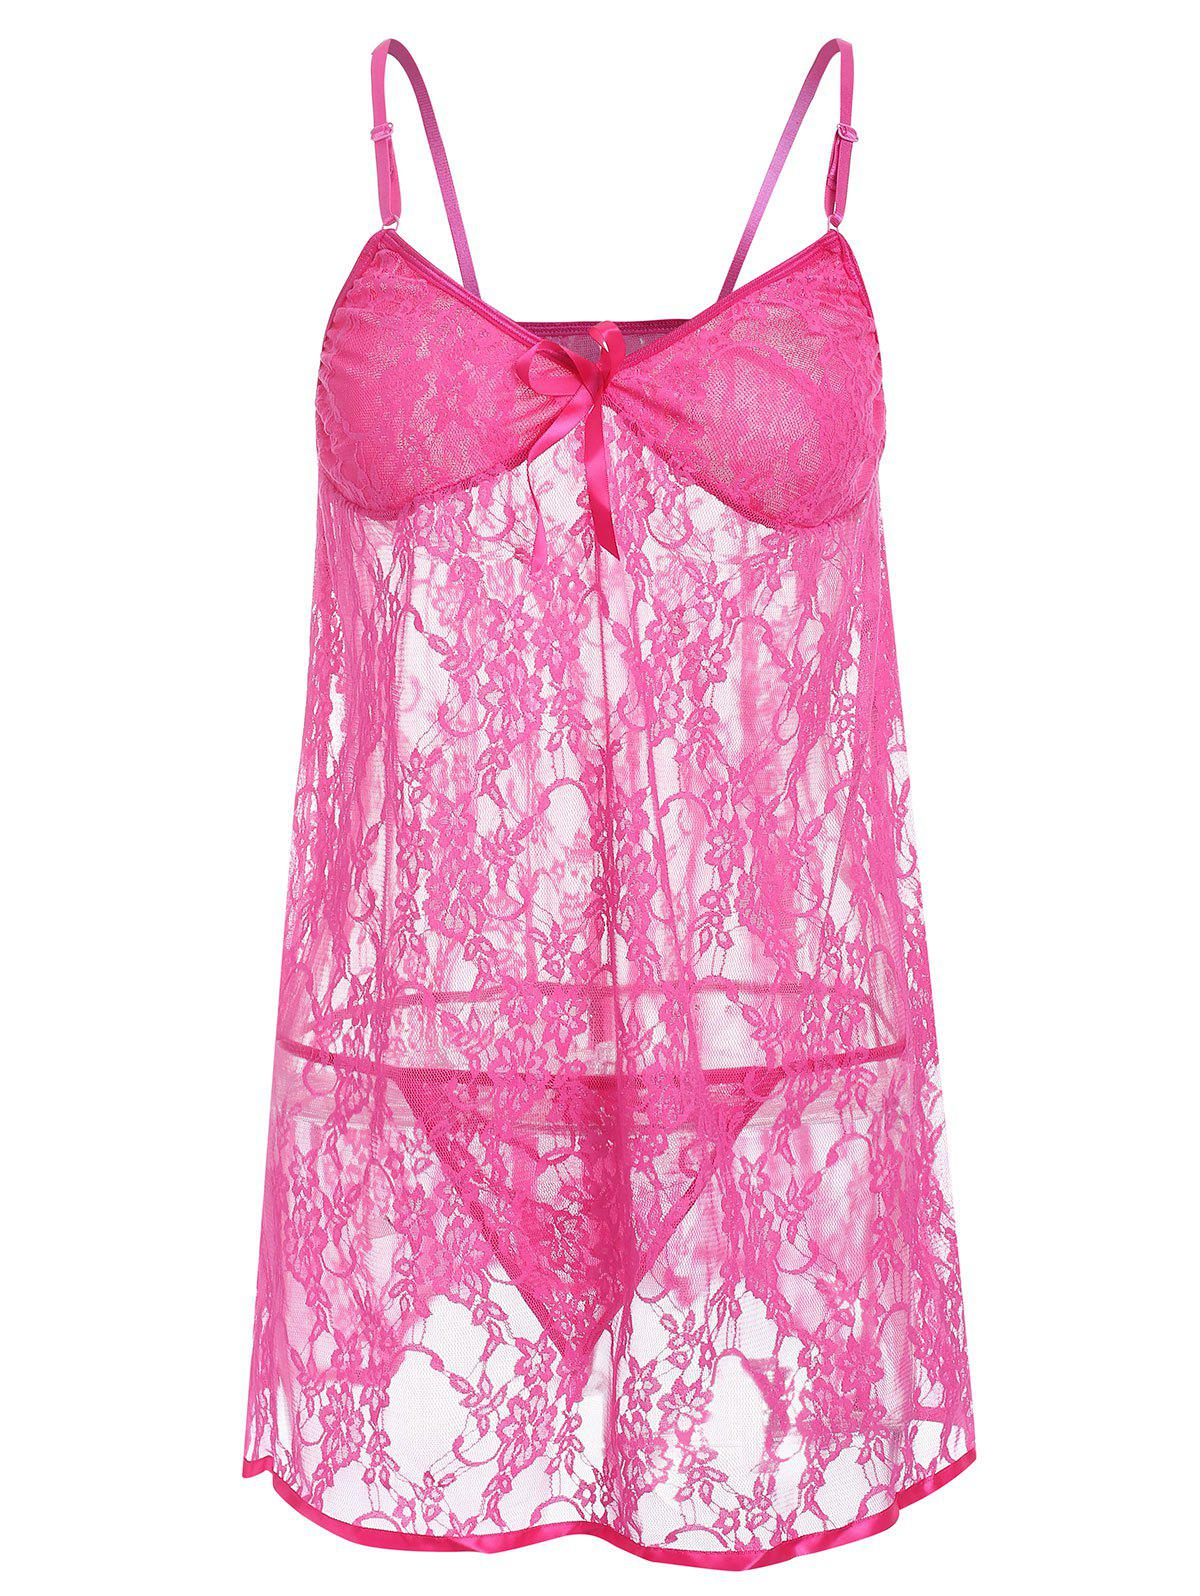 Affordable Plus Size See Through Lace Babydoll